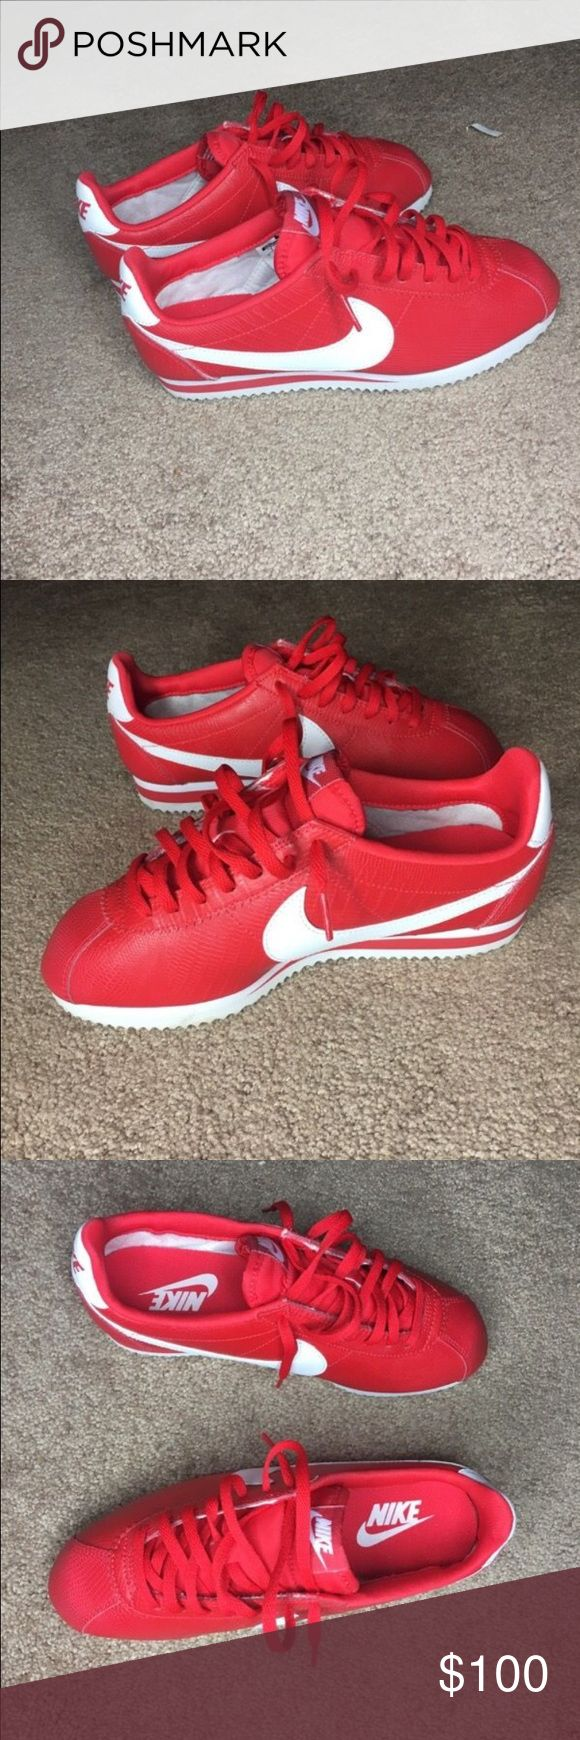 NIKE CLASSIC CORTEZ RETRO WOMENS SZ 7  Never worn  No box. Mint condition  Hit me up with best offer willing to negotiate  No trades. Nike Shoes Sneakers